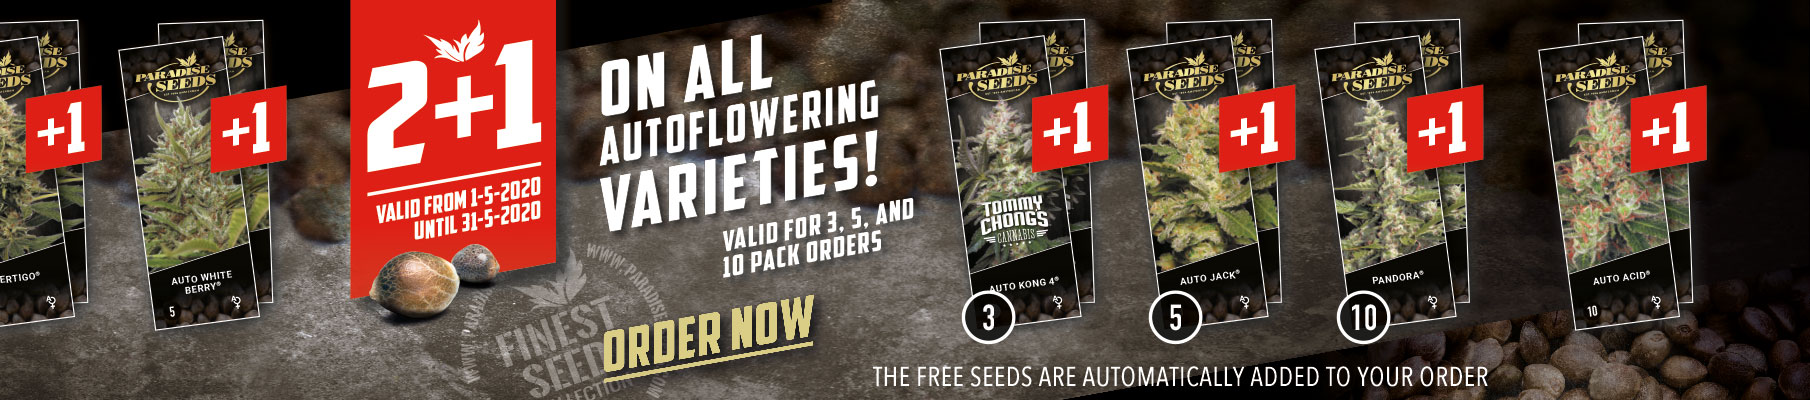 May Promo: 2 + 1 Autoflower | Paradise-Seeds